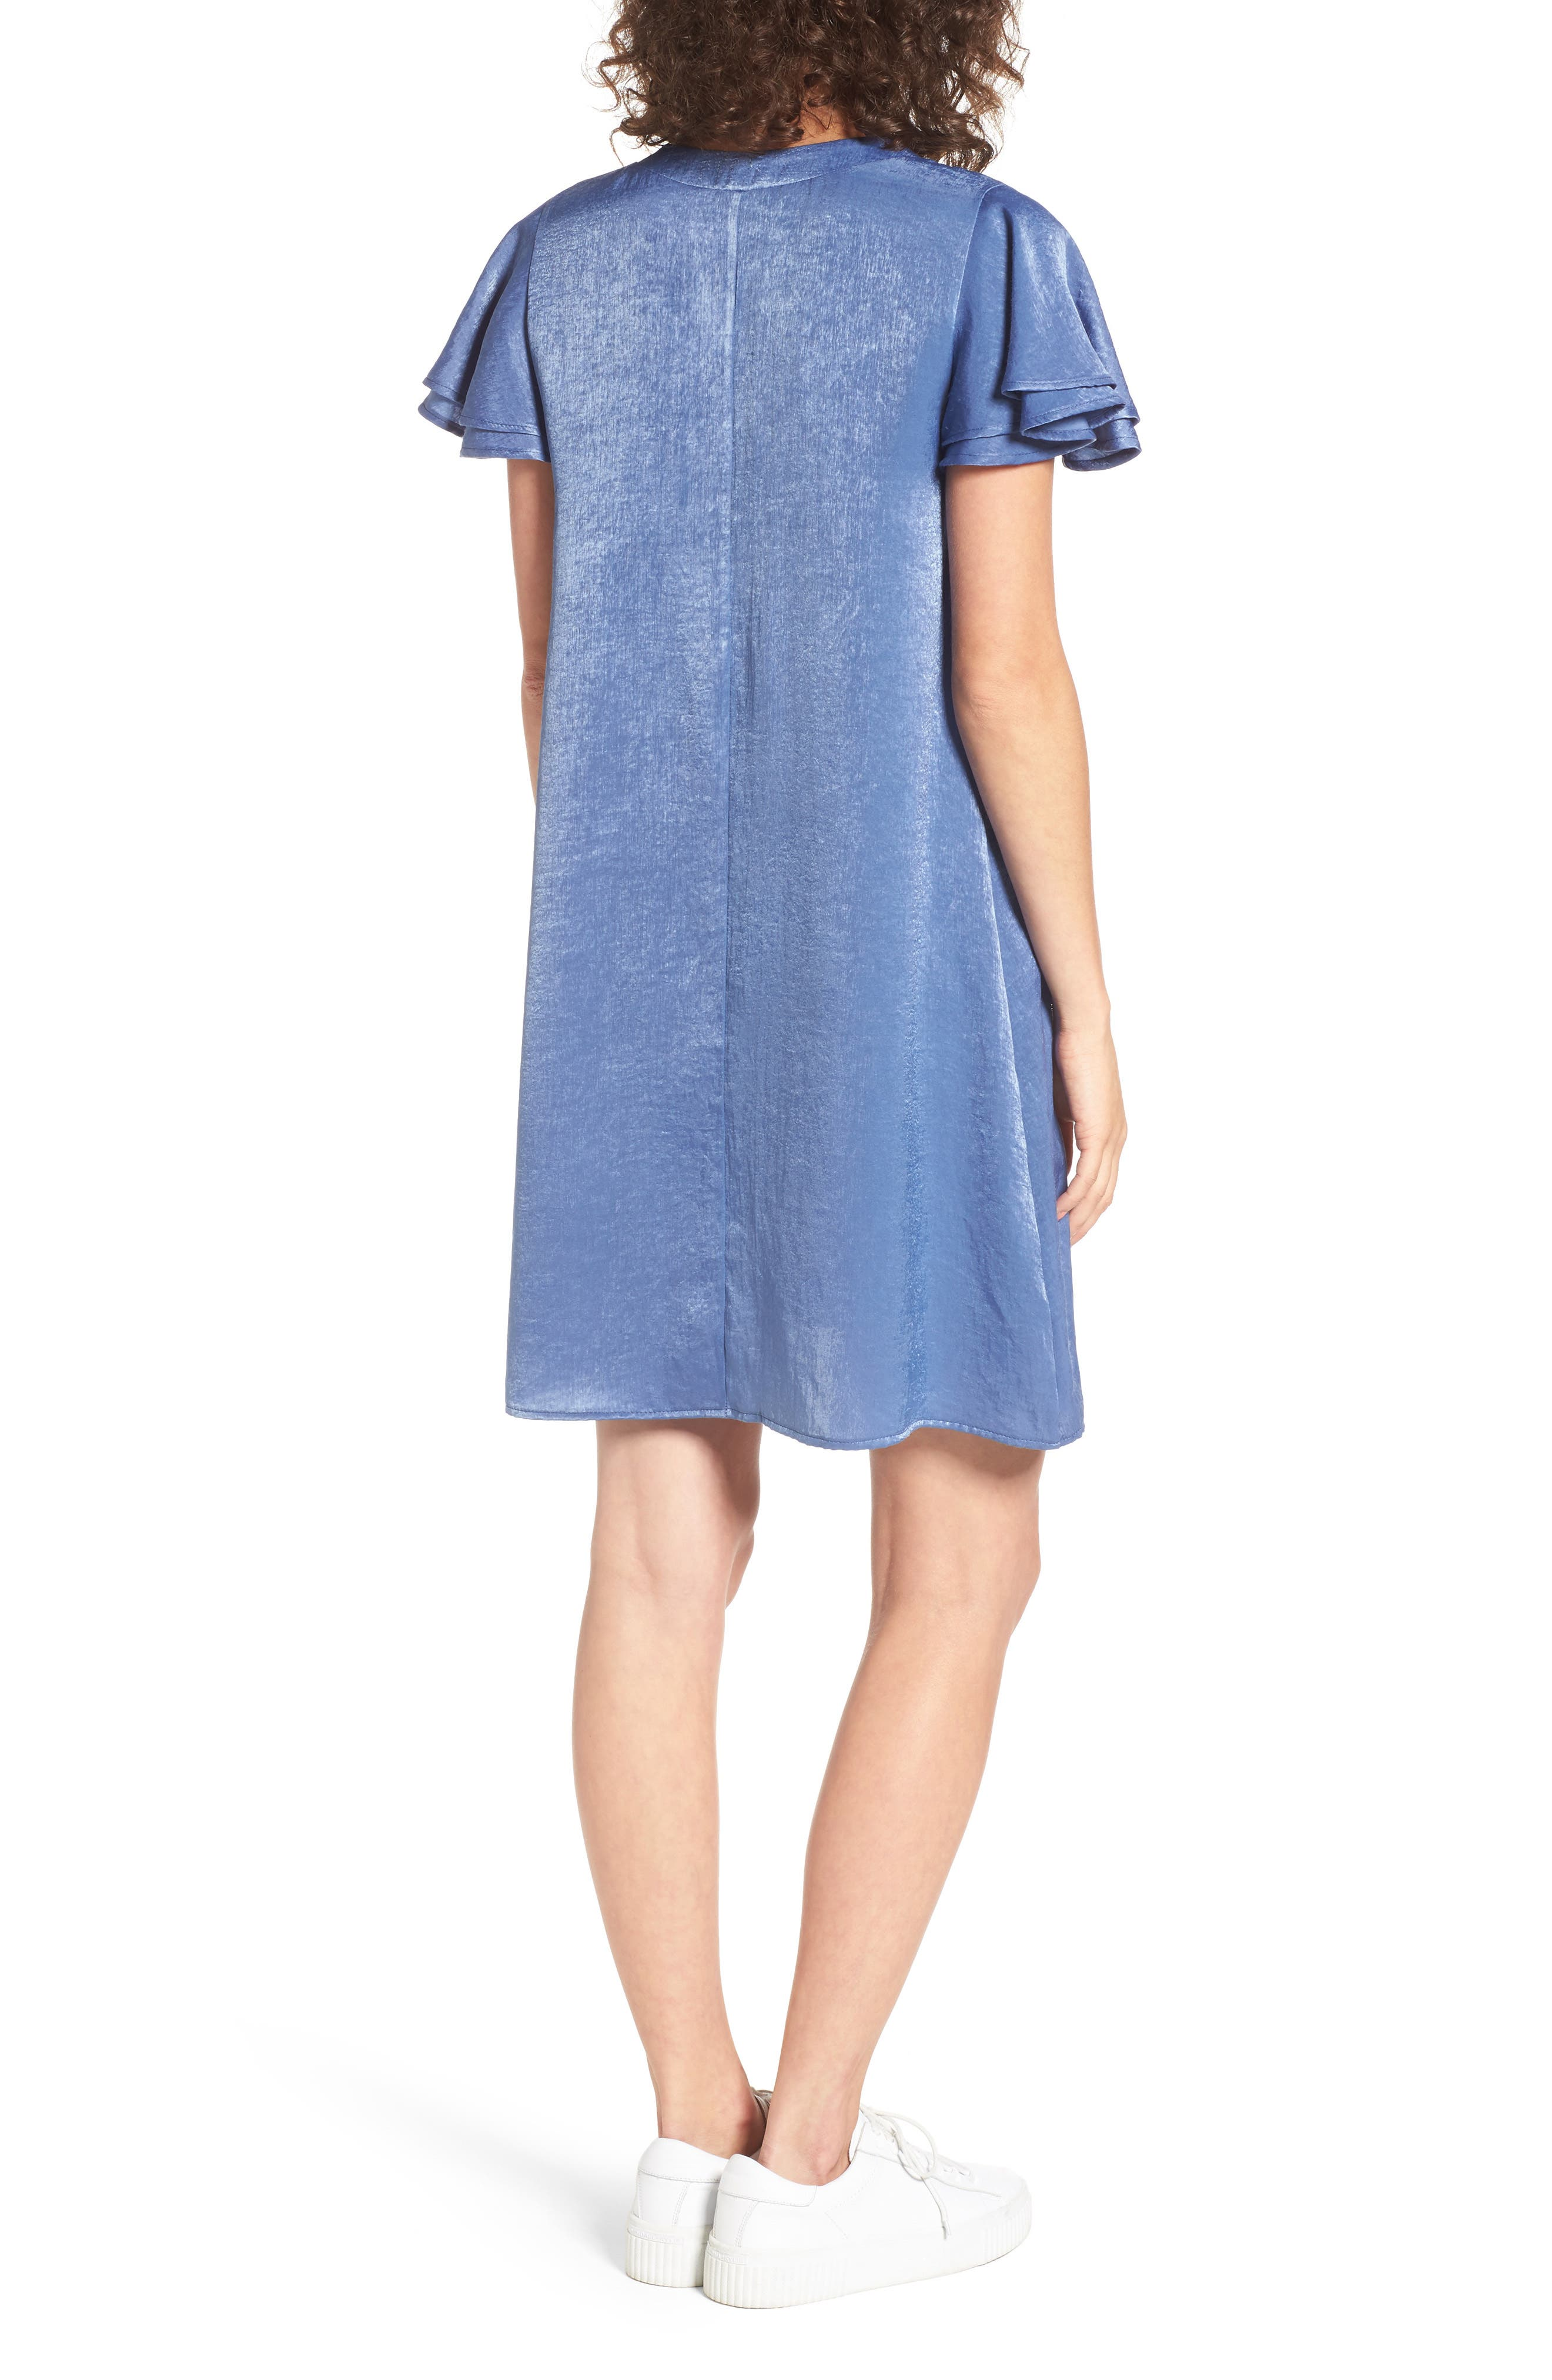 Lace-Up Shift Dress,                             Alternate thumbnail 2, color,                             Faded Denim